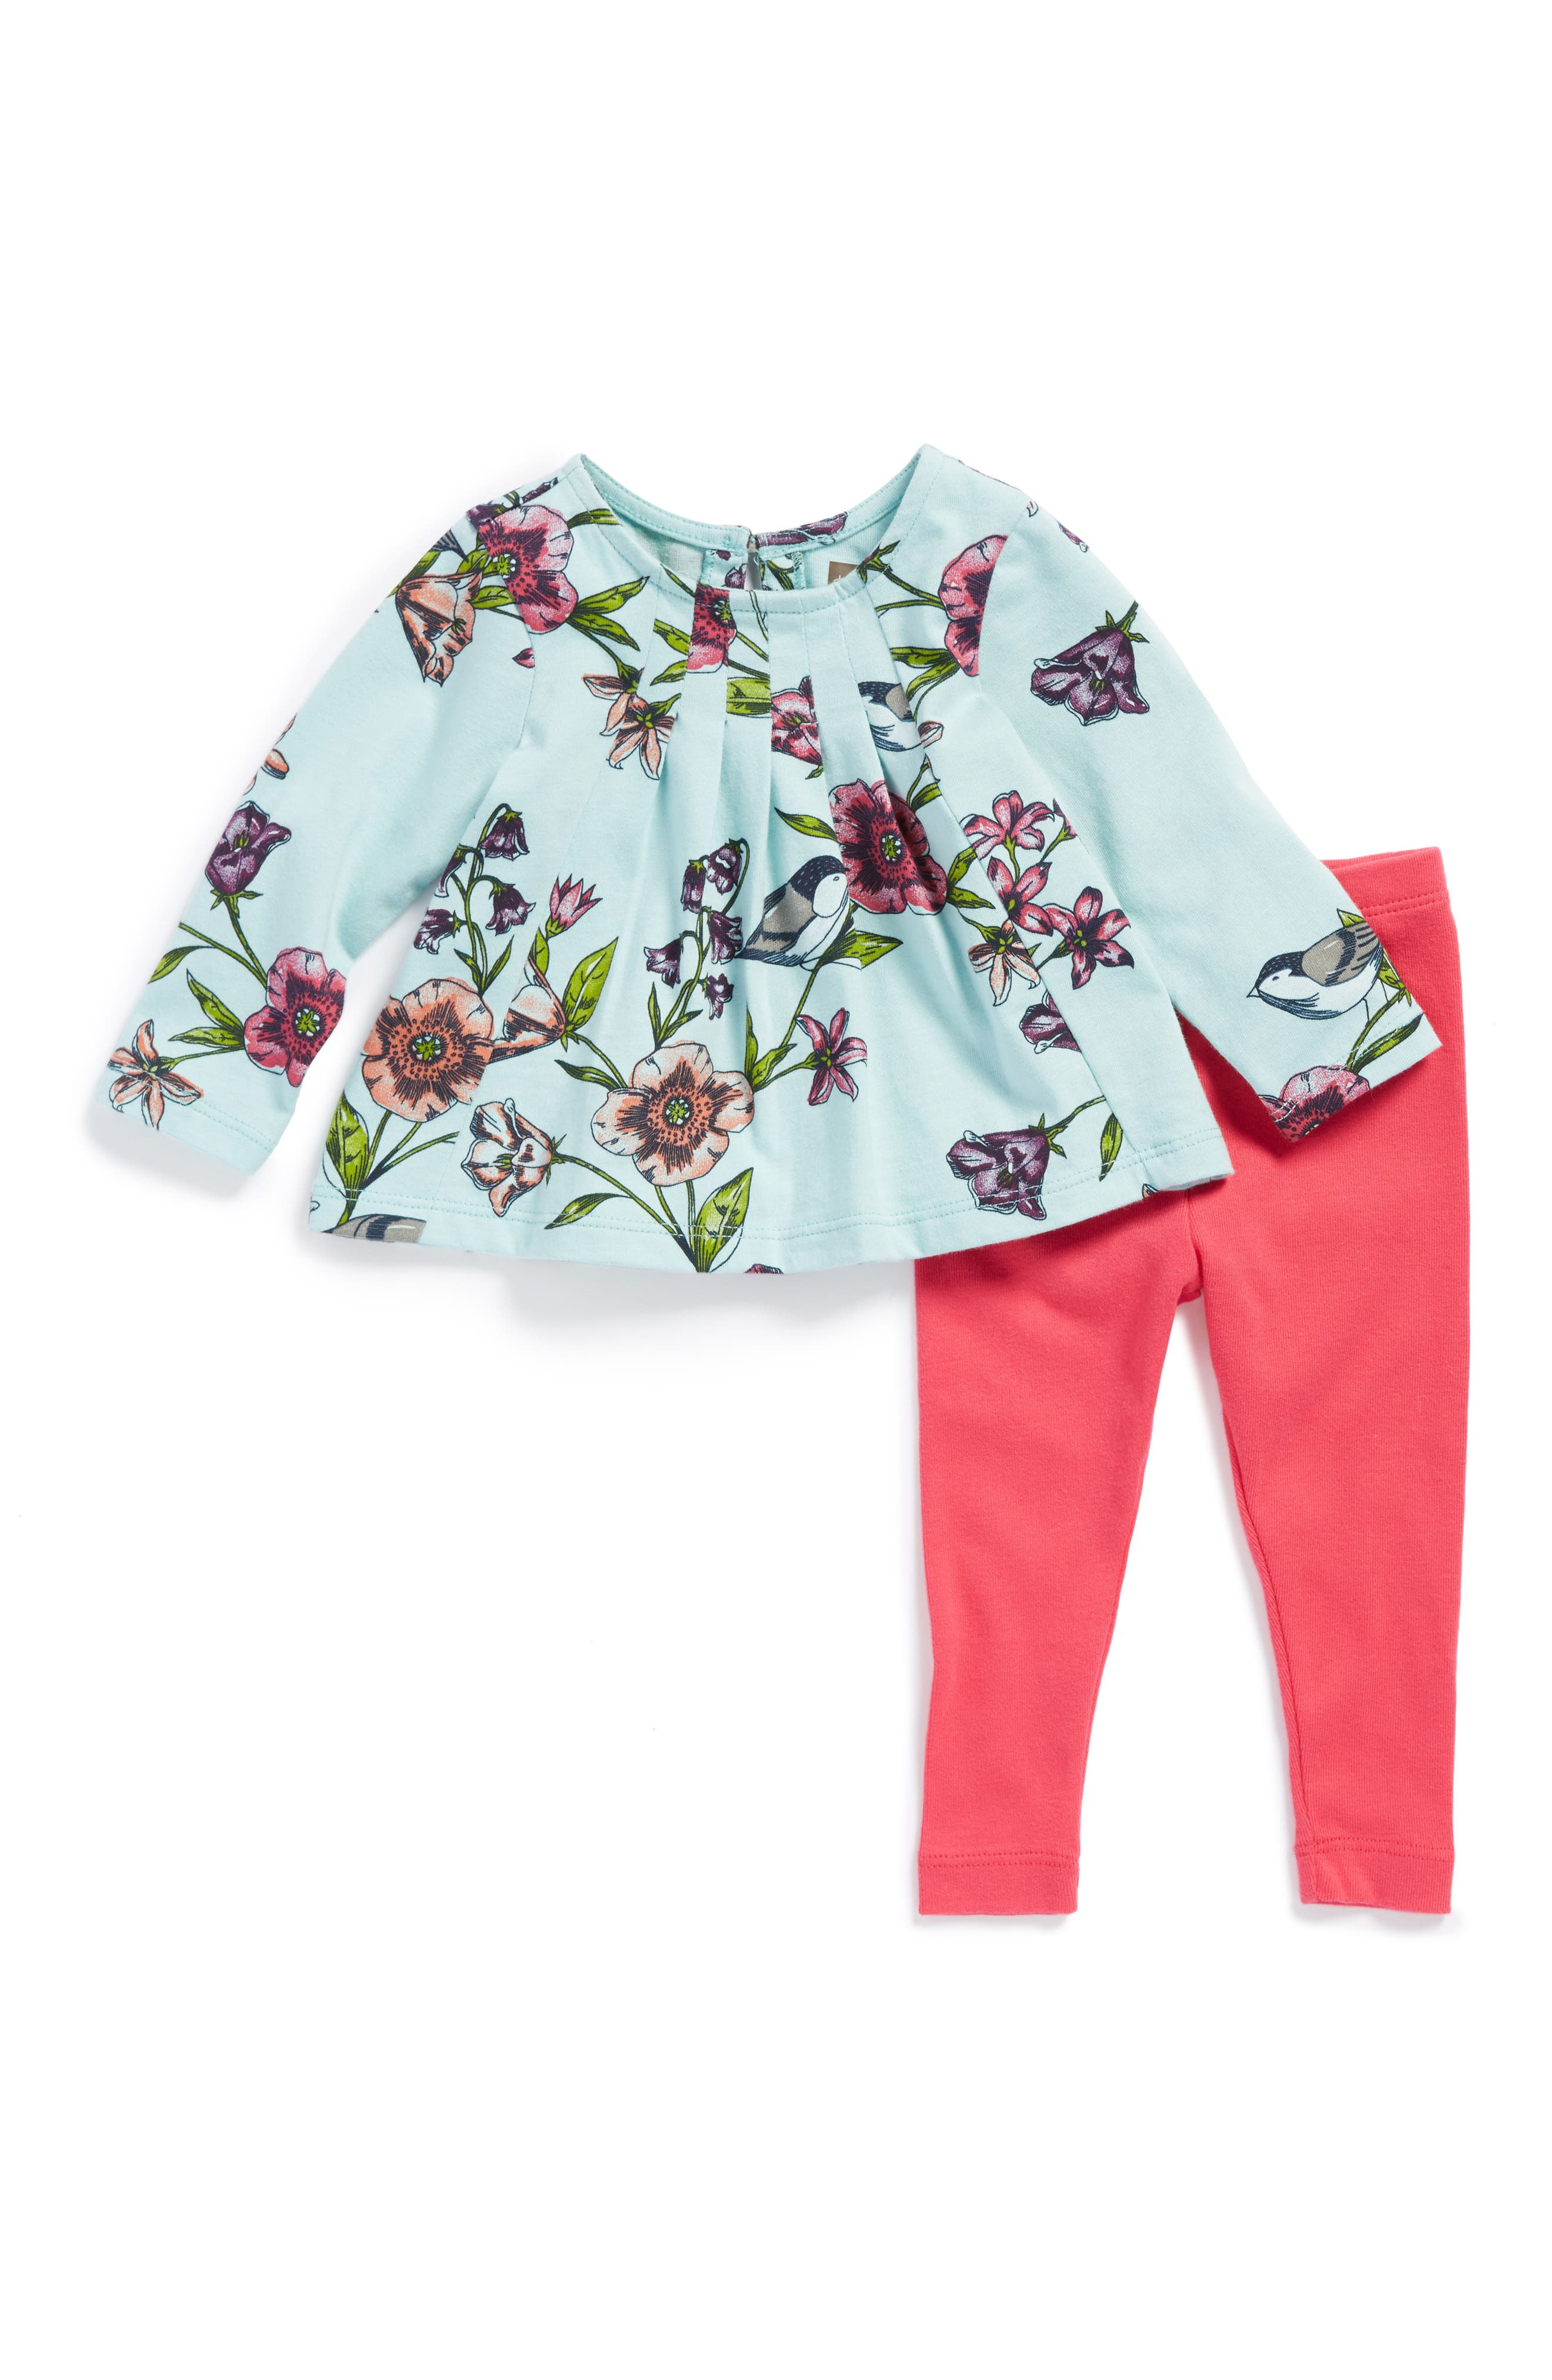 Alternate Image 1 Selected - Tea Collection Glenna Print Trapeze Top & Leggings Set (Baby Girls)